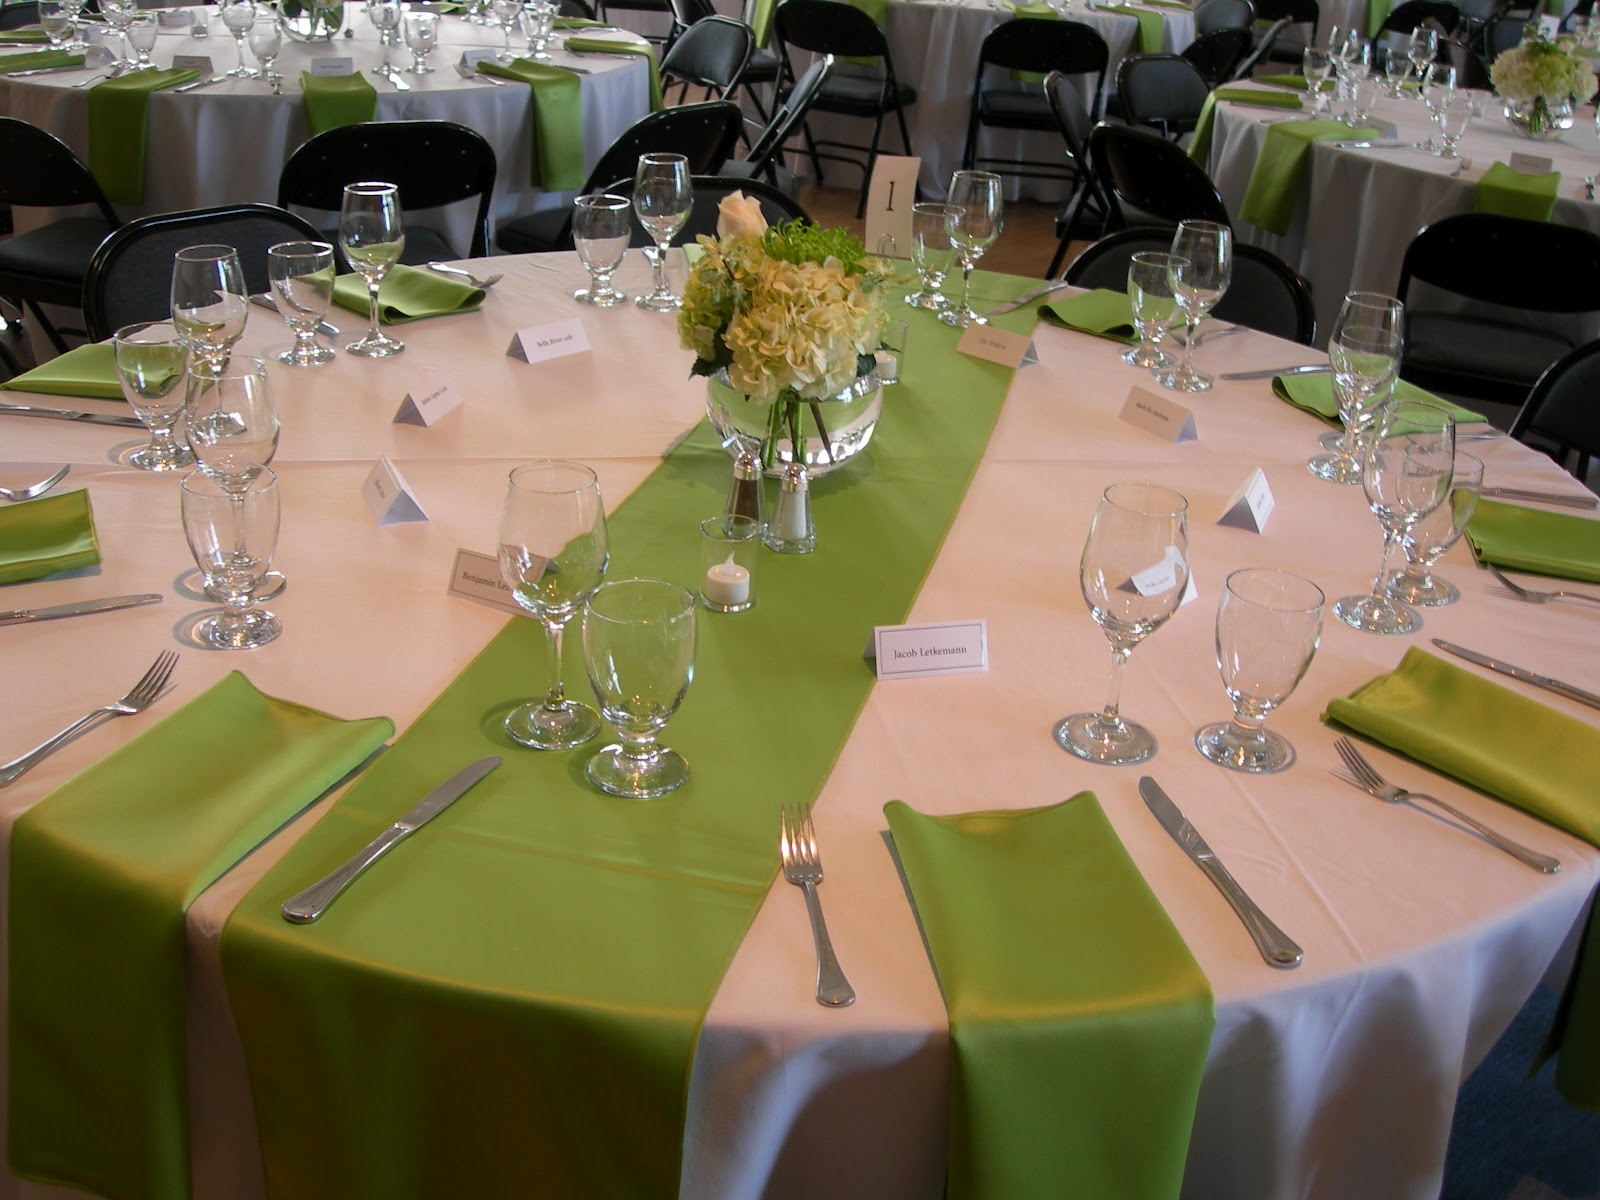 Events at Select Service Food stations buffet wedding and ice cream sundae bar at Victoria Park Pavilion & Events at Select Service: Food stations buffet wedding and ice cream ...